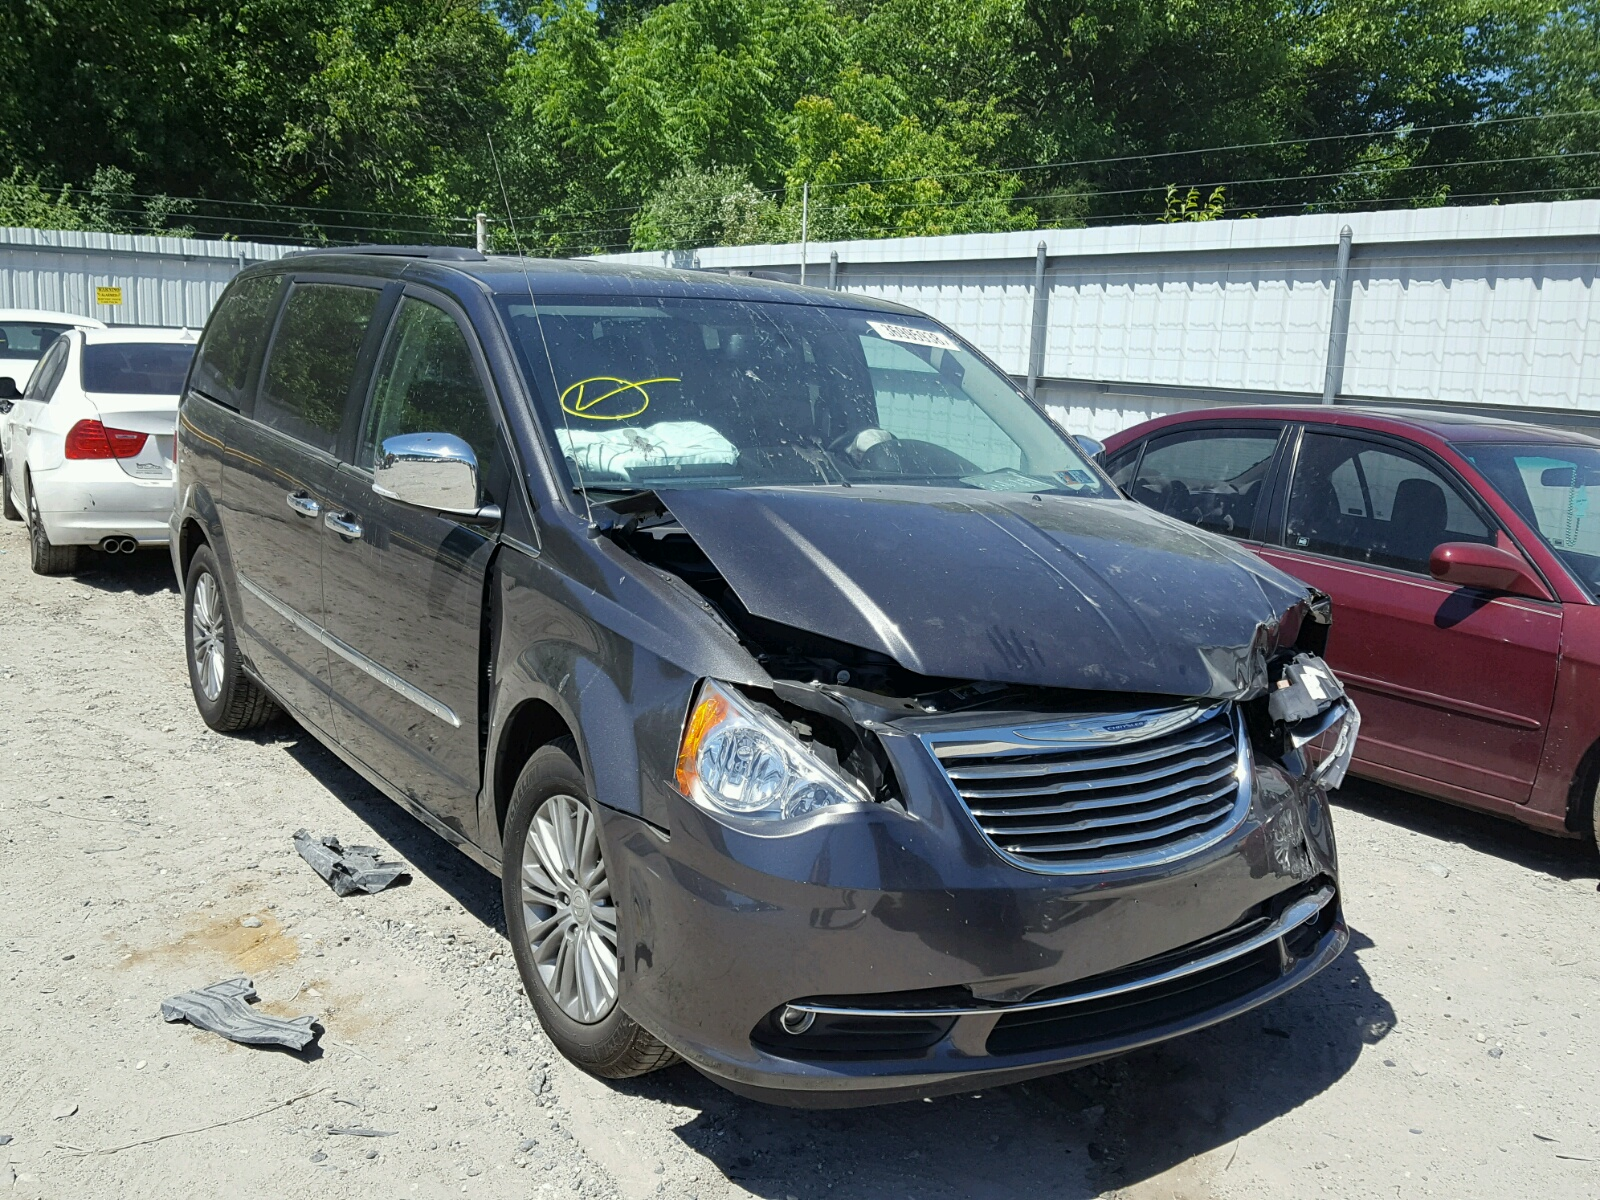 2c4rc1cg7gr207434 2016 Gray Chrysler Town Cou On Sale In Nj 1949 And Country Hubcaps 36l Left